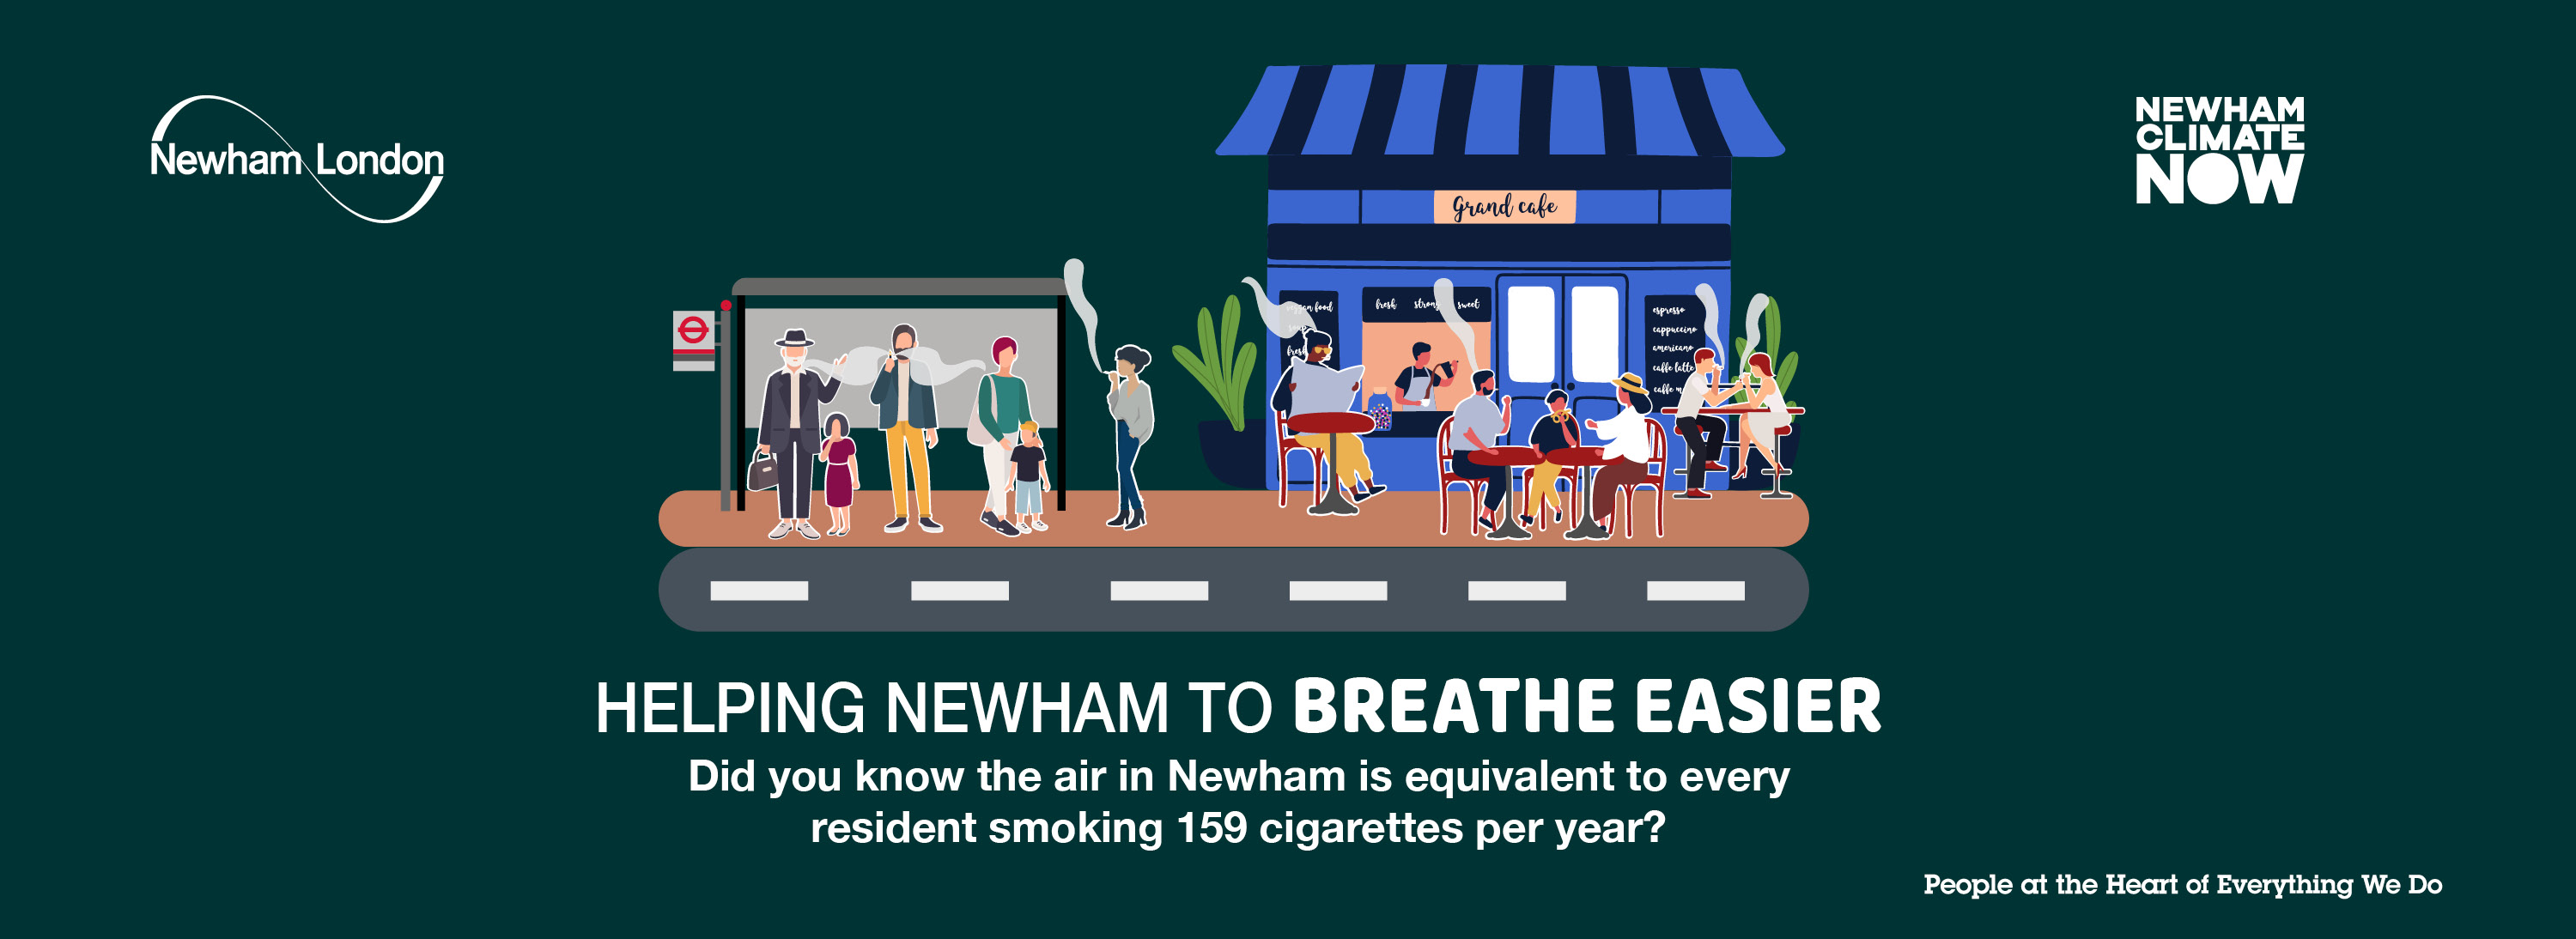 Did you know the air in Newham is equivalent to every resident smoking 159 cigarettes per year?